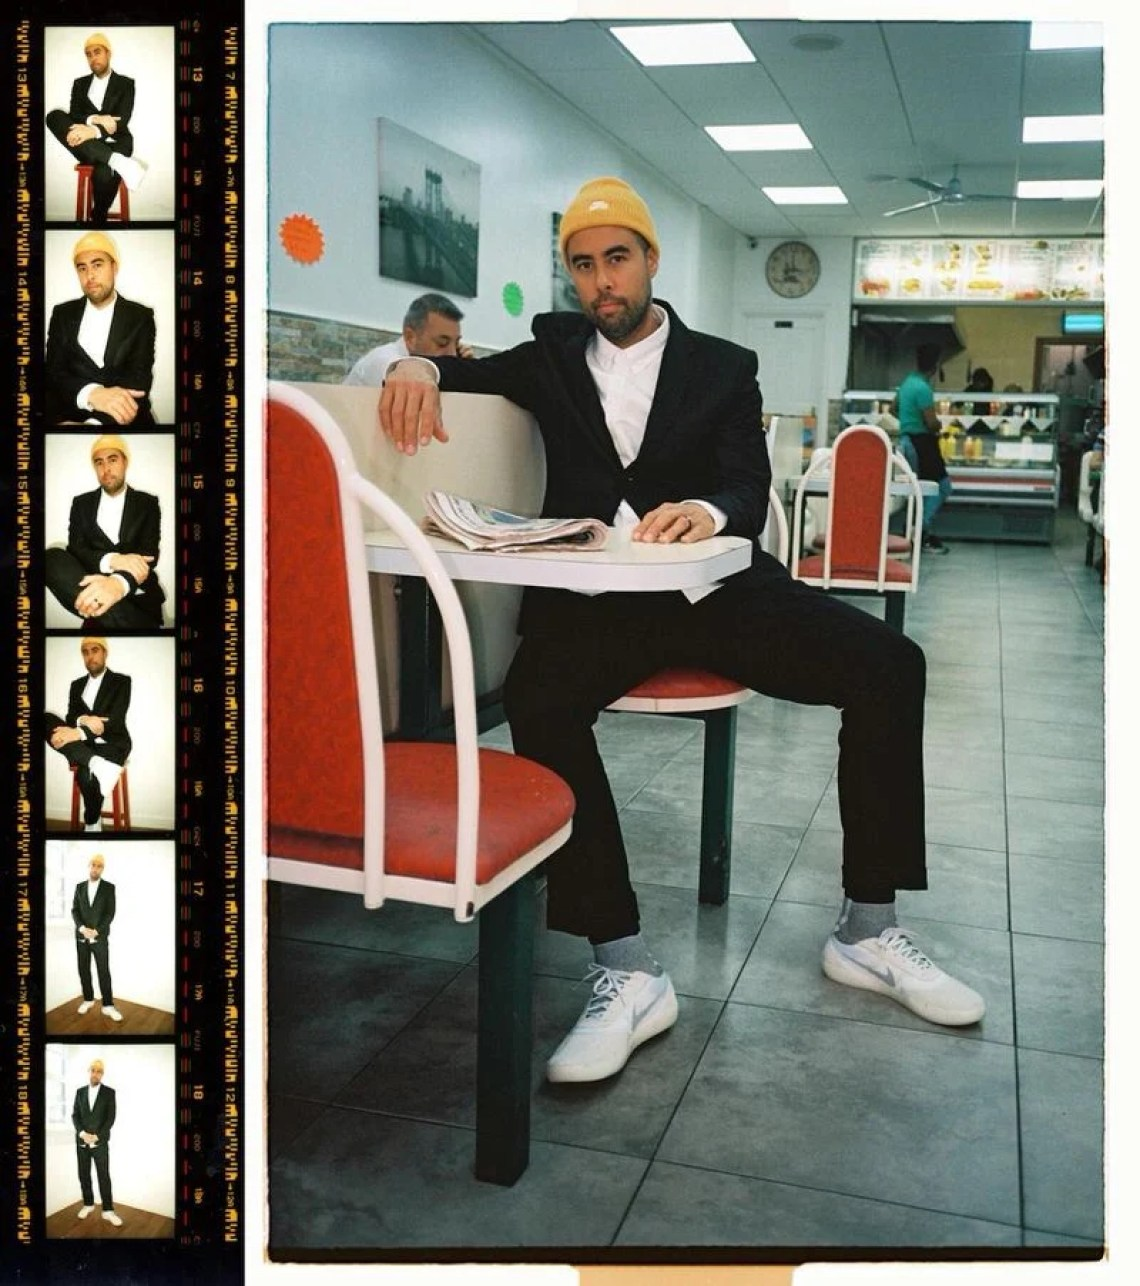 Eric Koston is feeling the smart meets street style tactic with the blazer, trousers, and Koston 3 Hyperfeel combo.